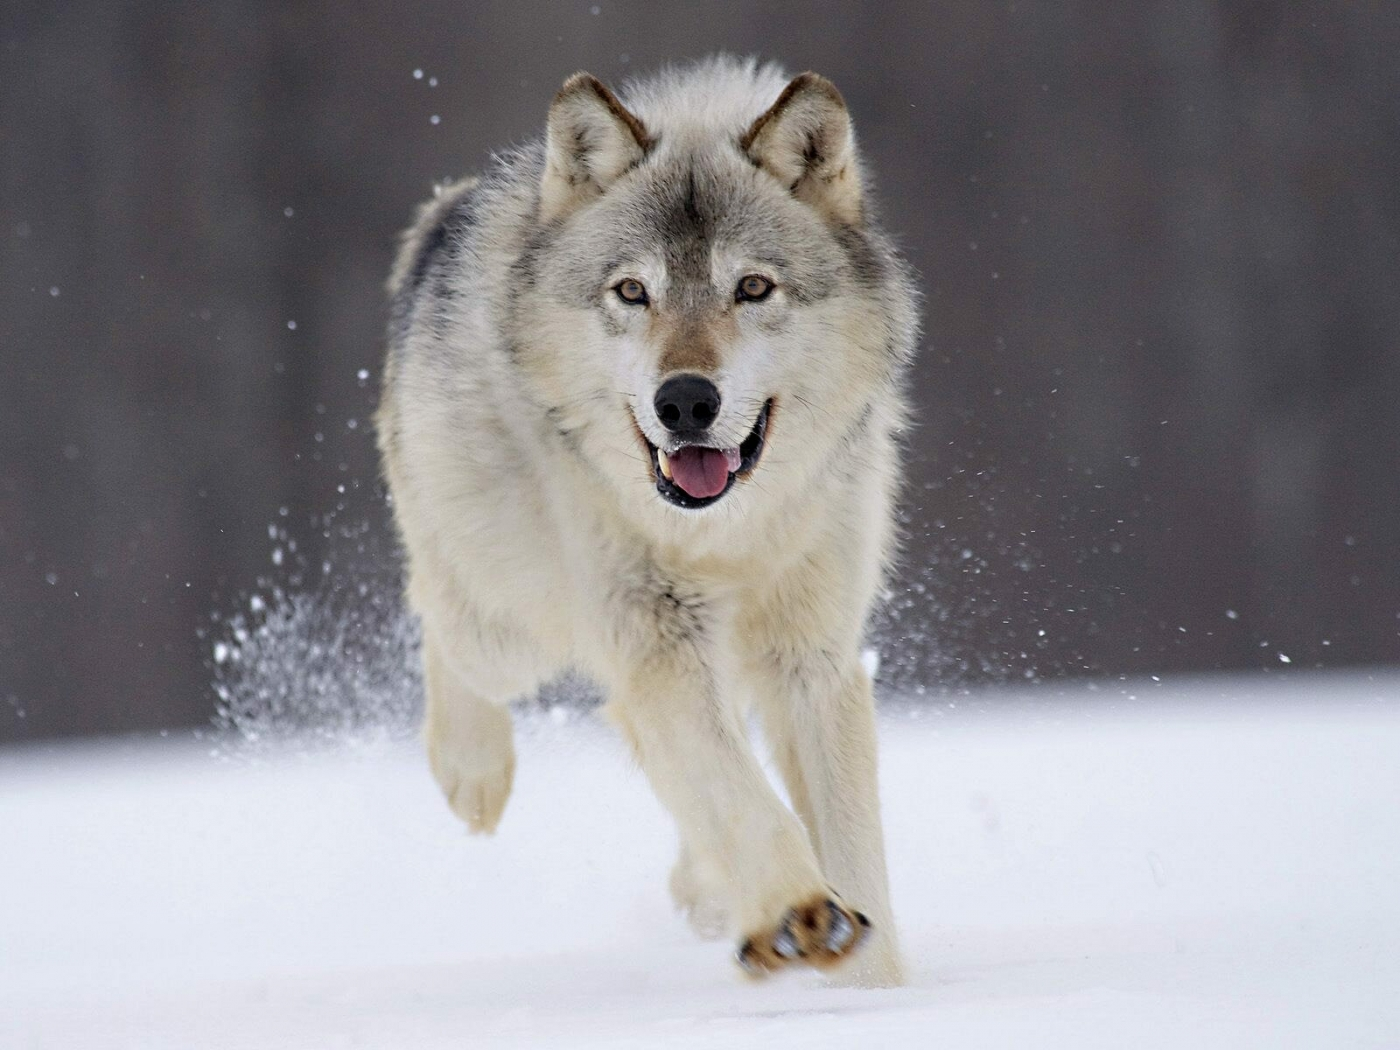 35991 download wallpaper Wolfs, Animals screensavers and pictures for free